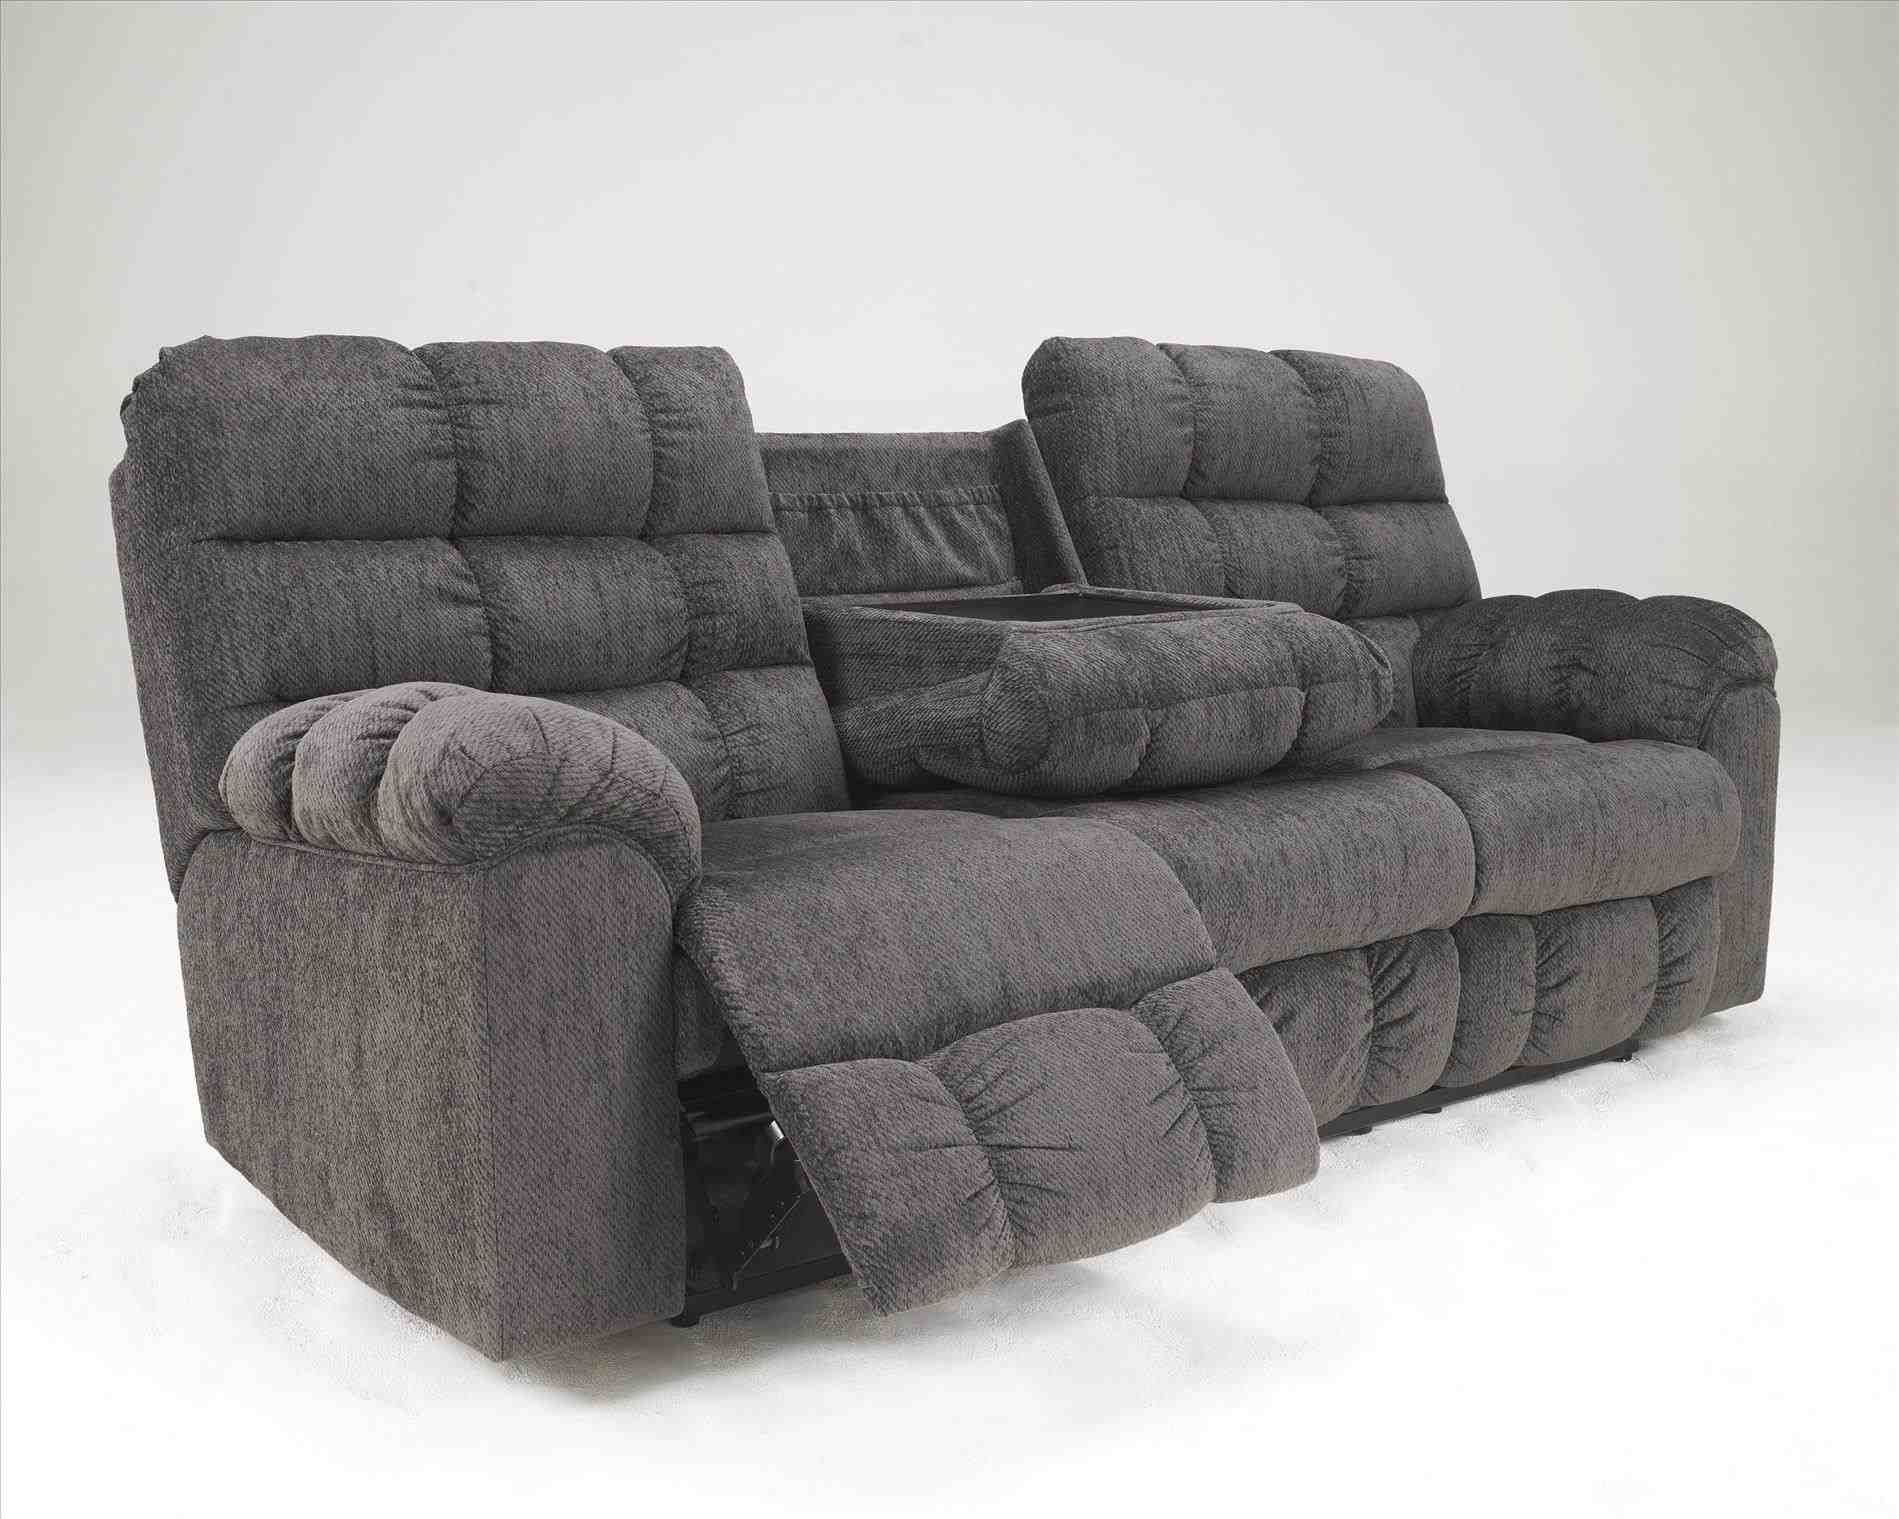 Recliners Phoenix Lots Opens At Rhode Island Ping Center U2017 A Review Full Size Of Loveseat Lazy Boy Reclining